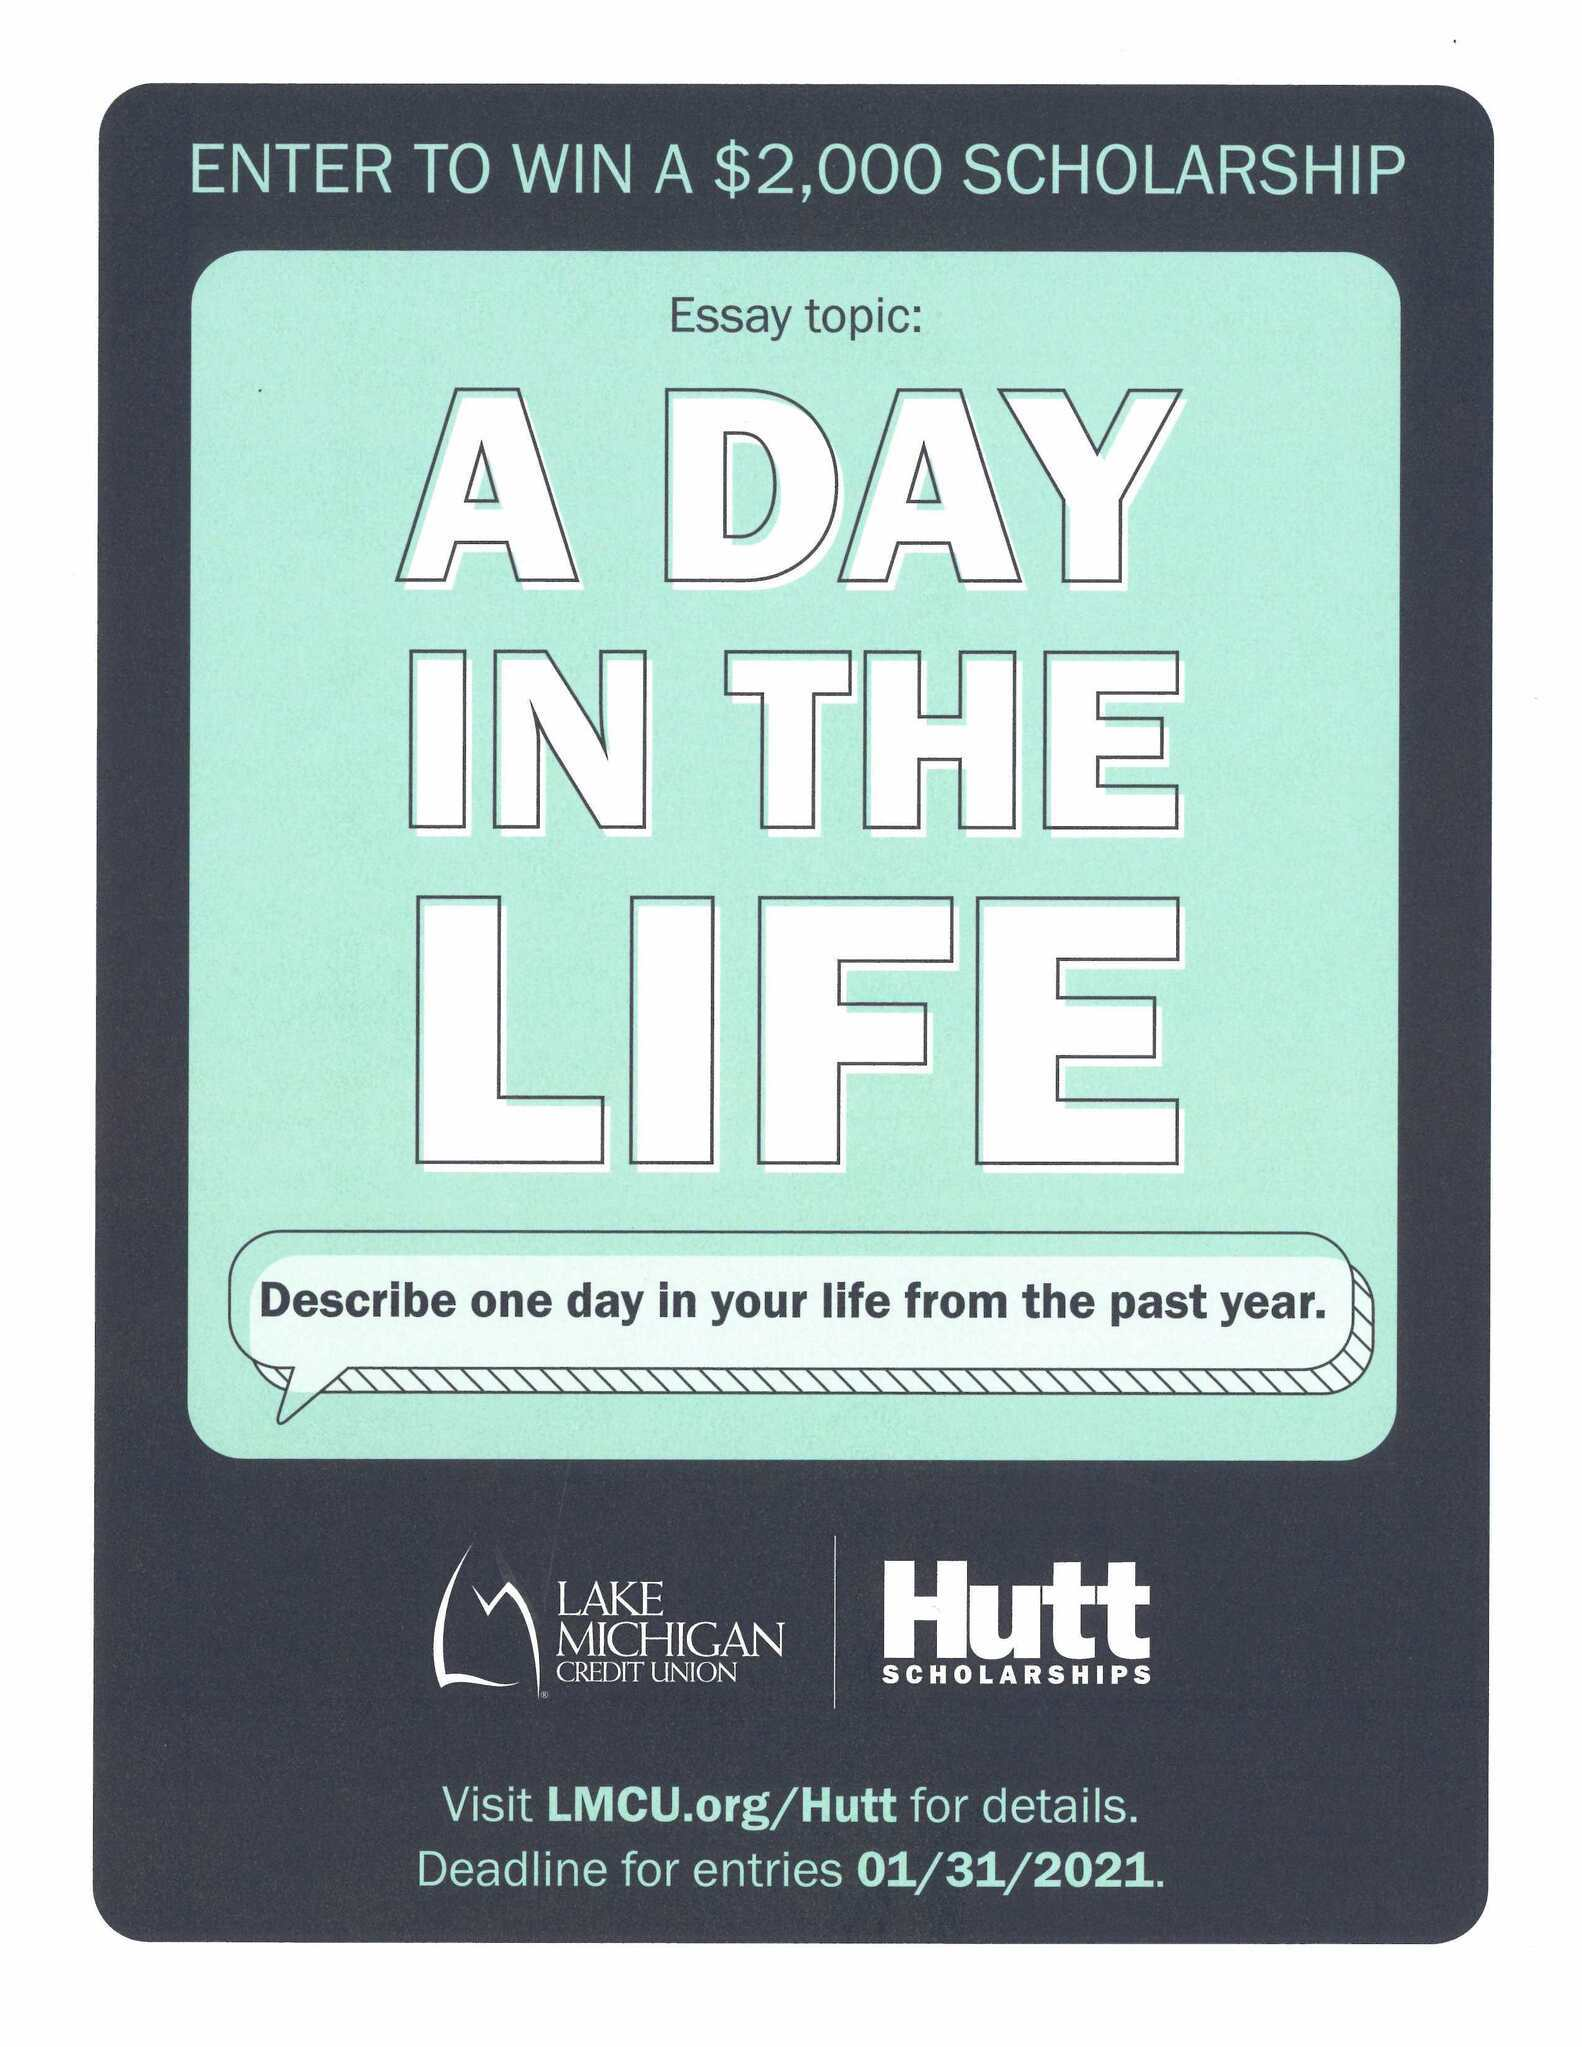 Hutt Scholarship LMCU A day in the life